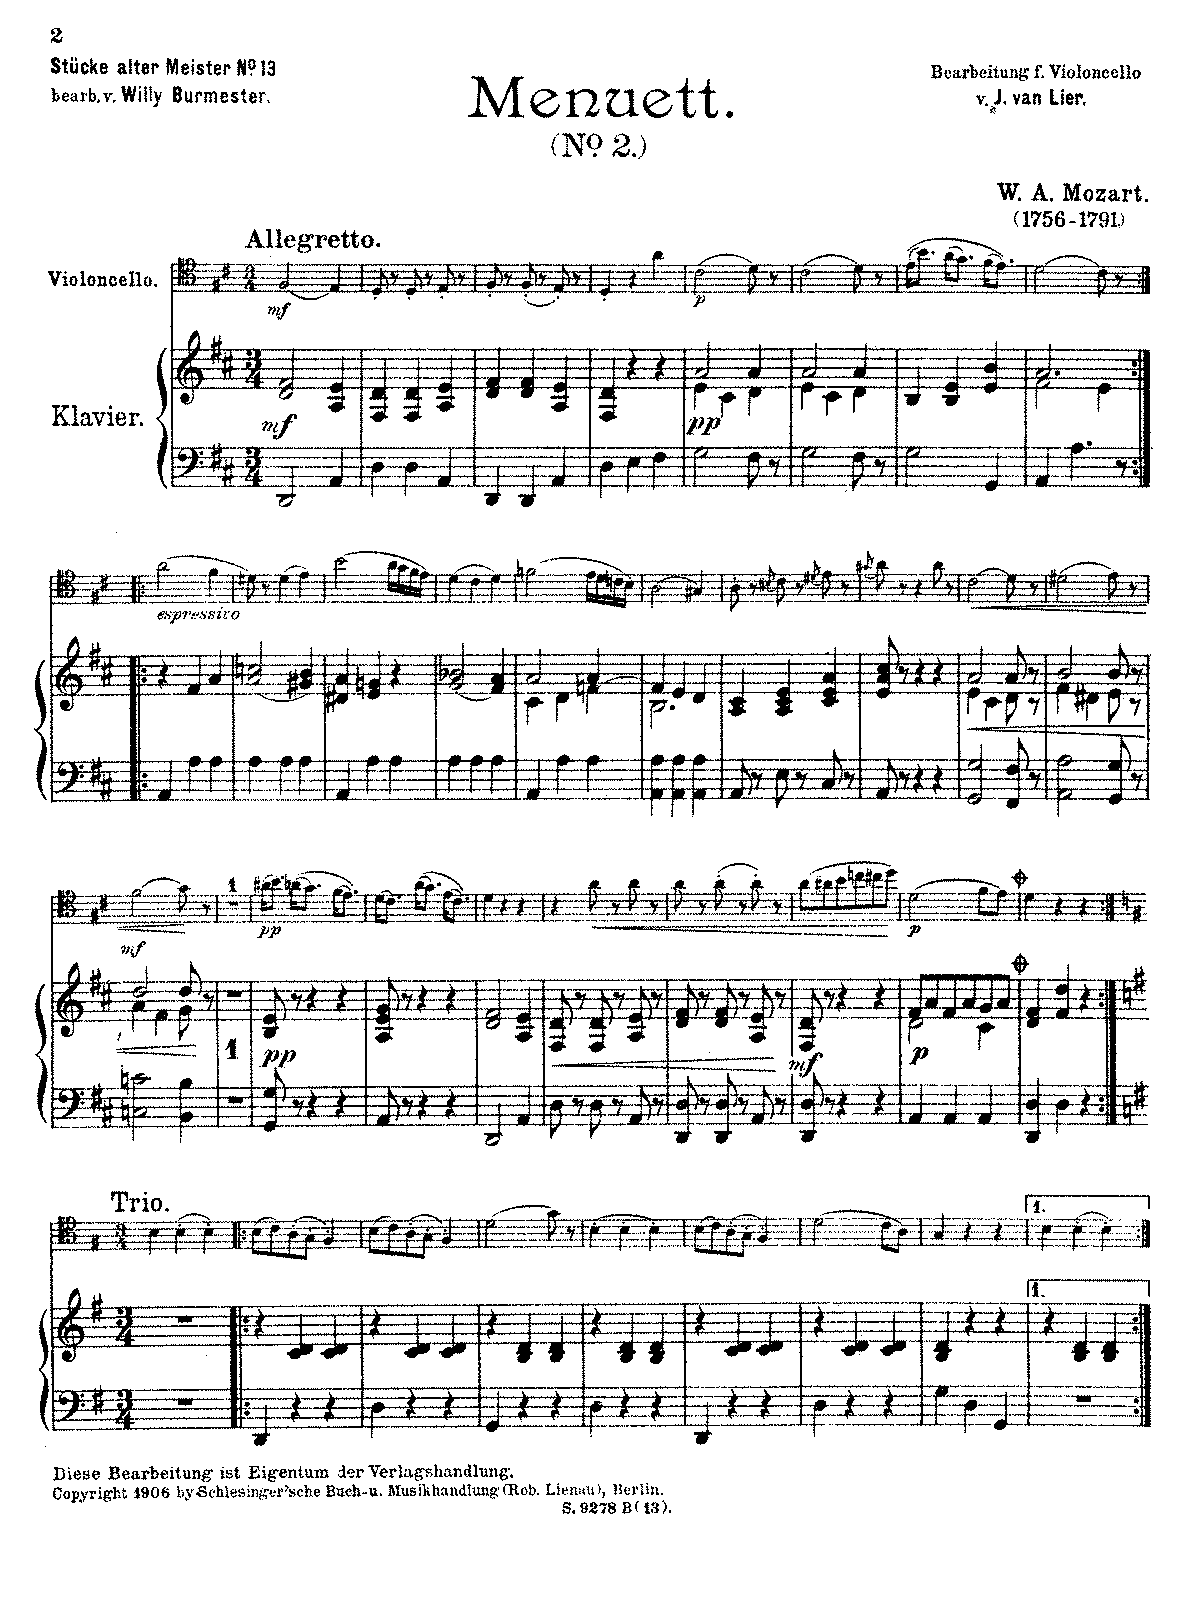 PMLP51687-Mozart - Menuett No.2 cello piano.pdf